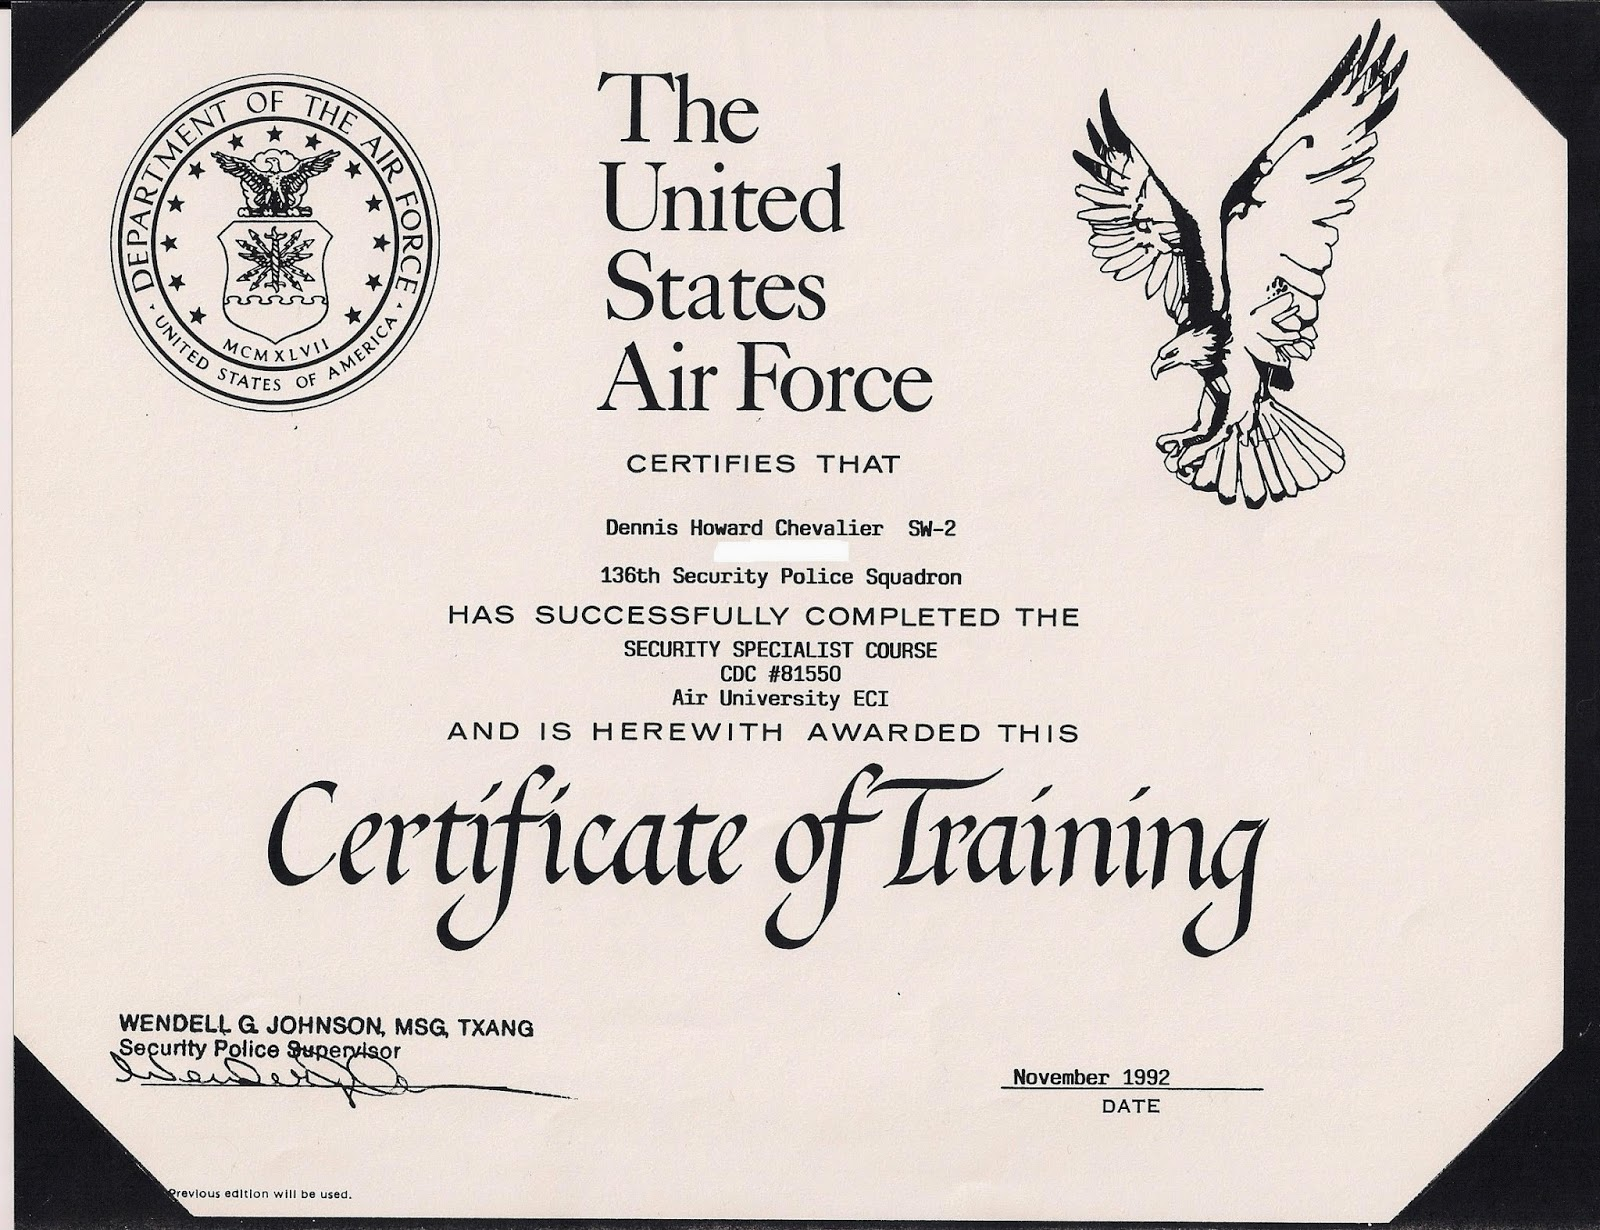 Air force certificate of appreciation template image collections af training certificate template images certificate design and air force certificate template download gallery certificate usaf yelopaper Choice Image